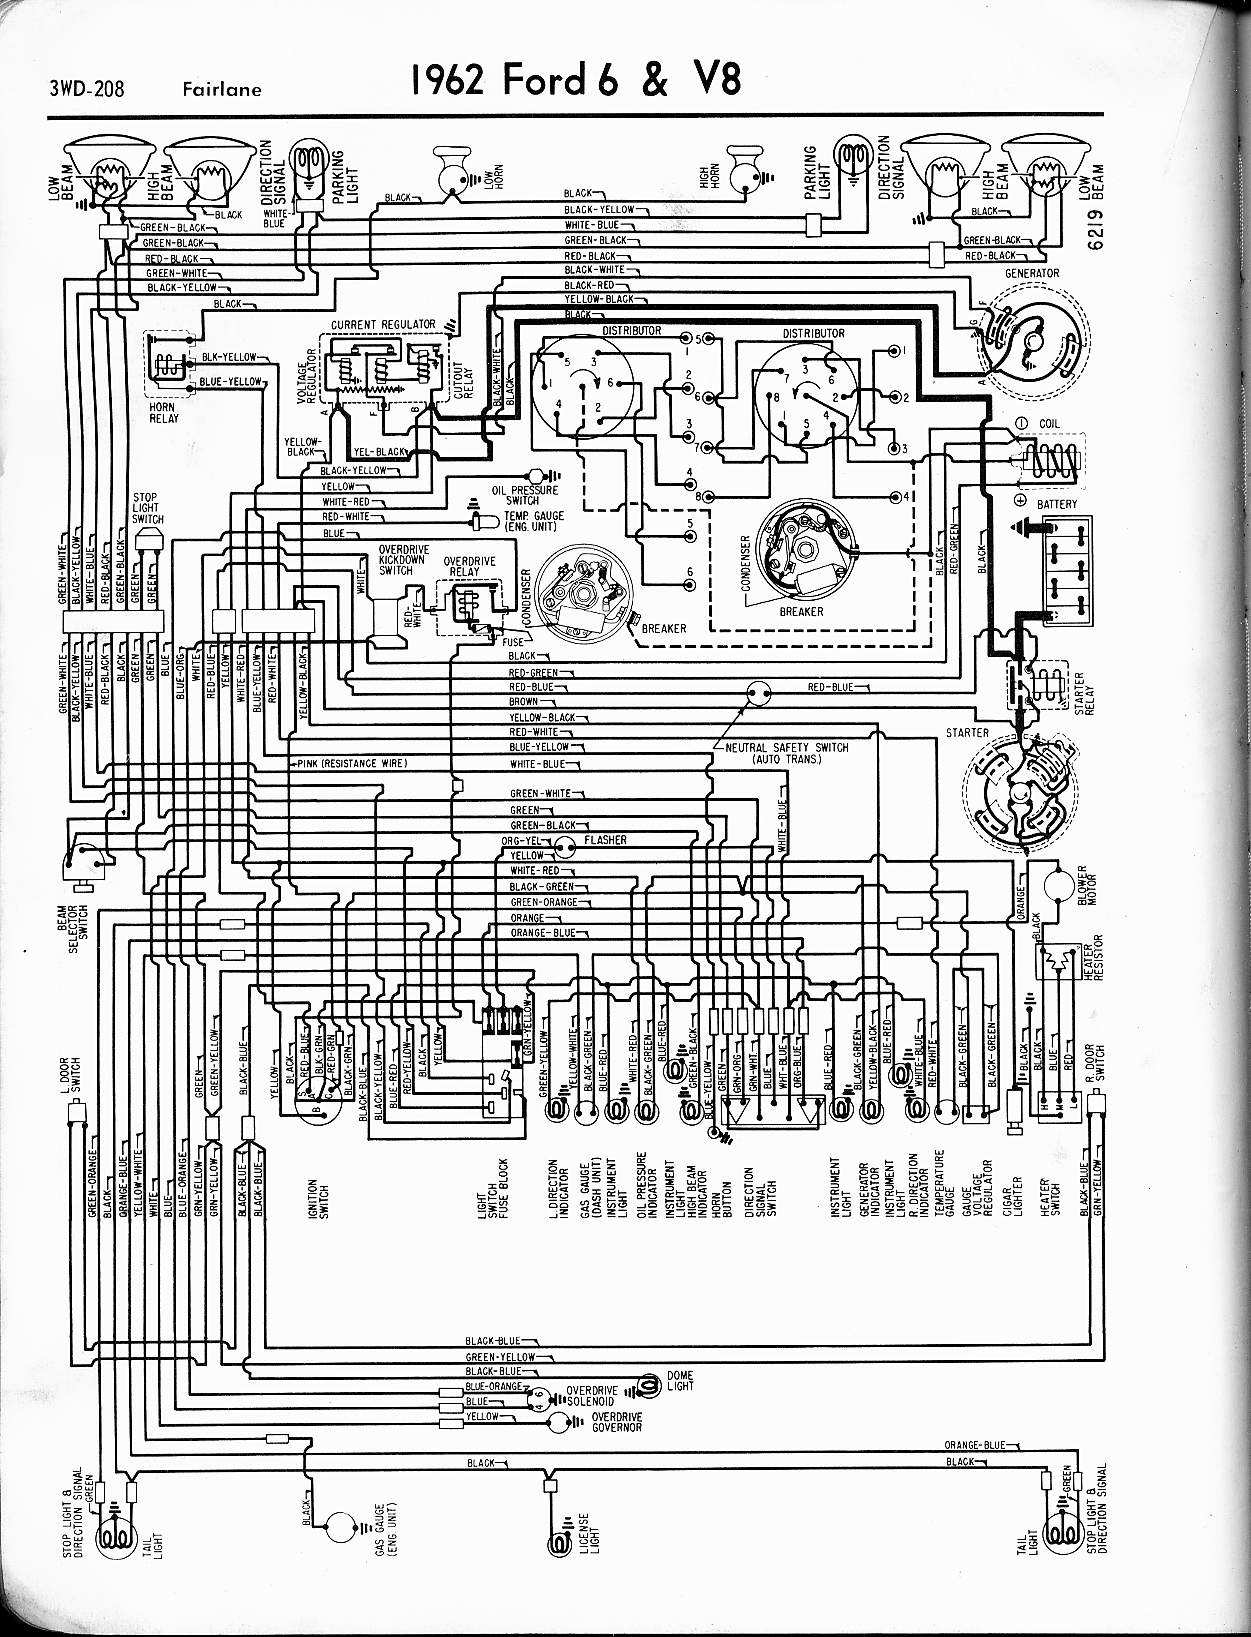 57 65 ford wiring diagrams 1962 Ford Truck Wiring Diagram 1962 6 \u0026 v8 fairlane